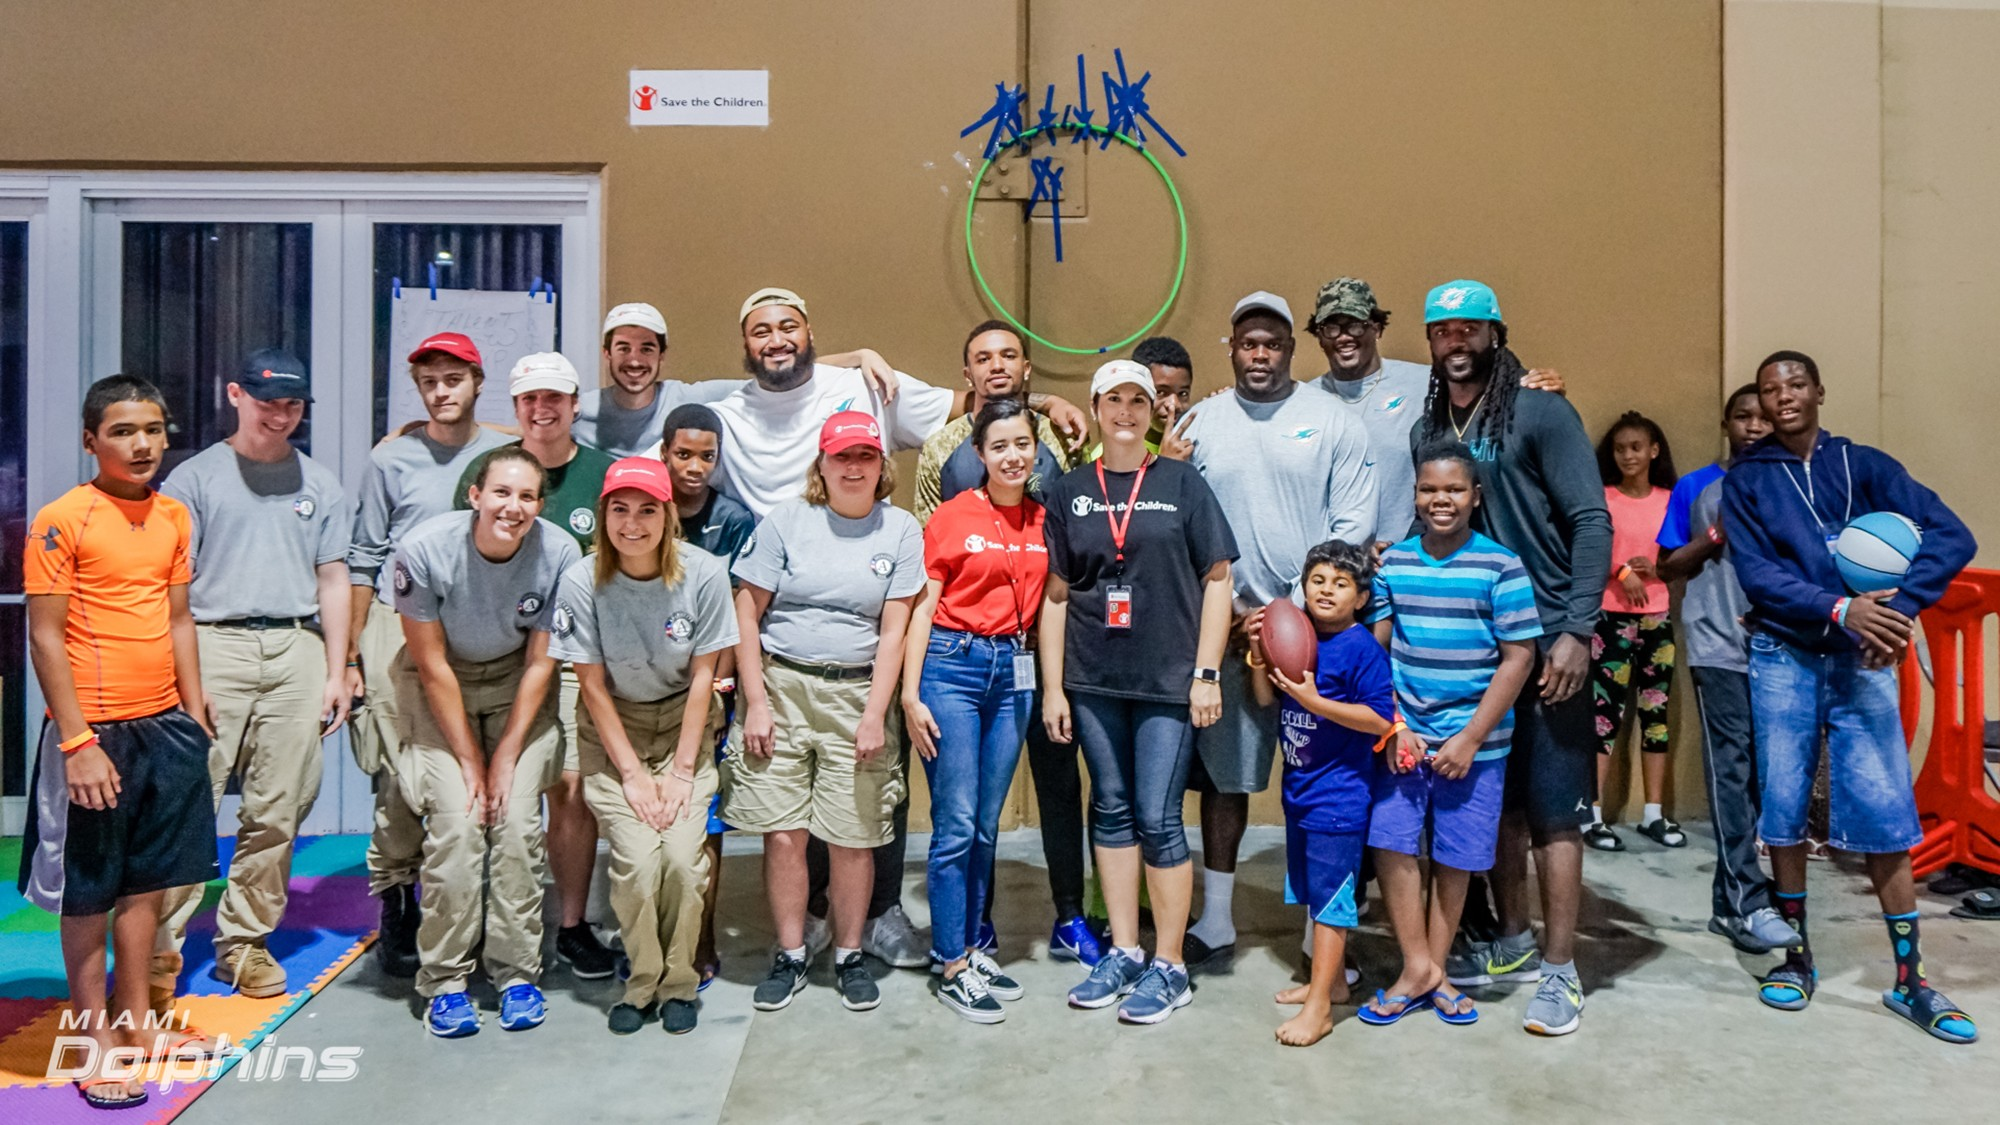 Miami Dolphins players take photo with Red Cross workers and evacuees at the Red Cross Shelter